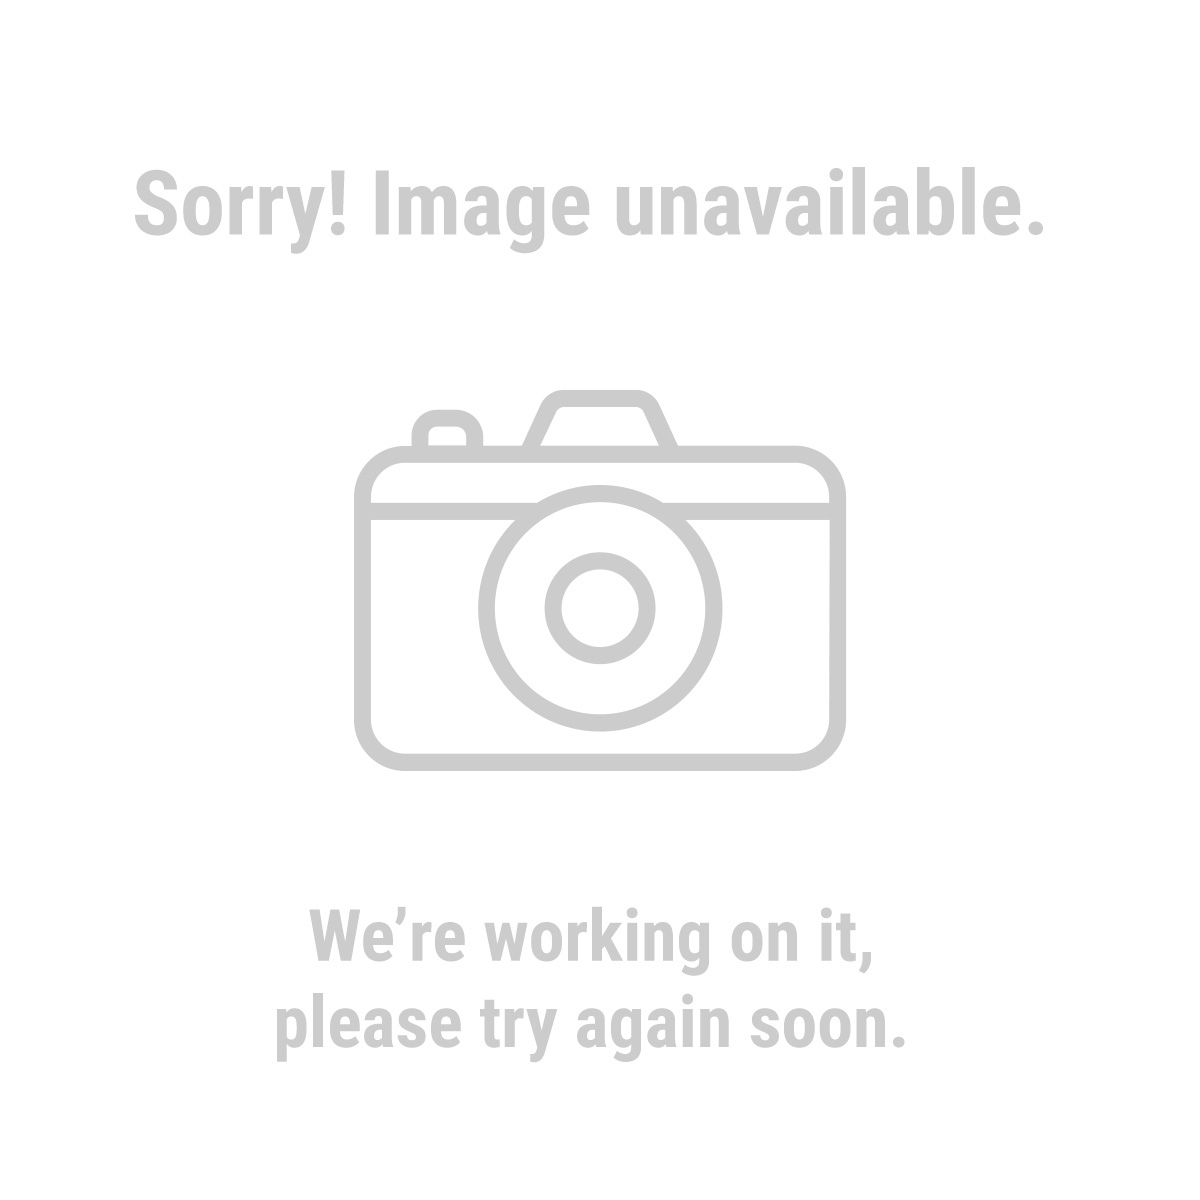 Gordon 3359 Utility Knife